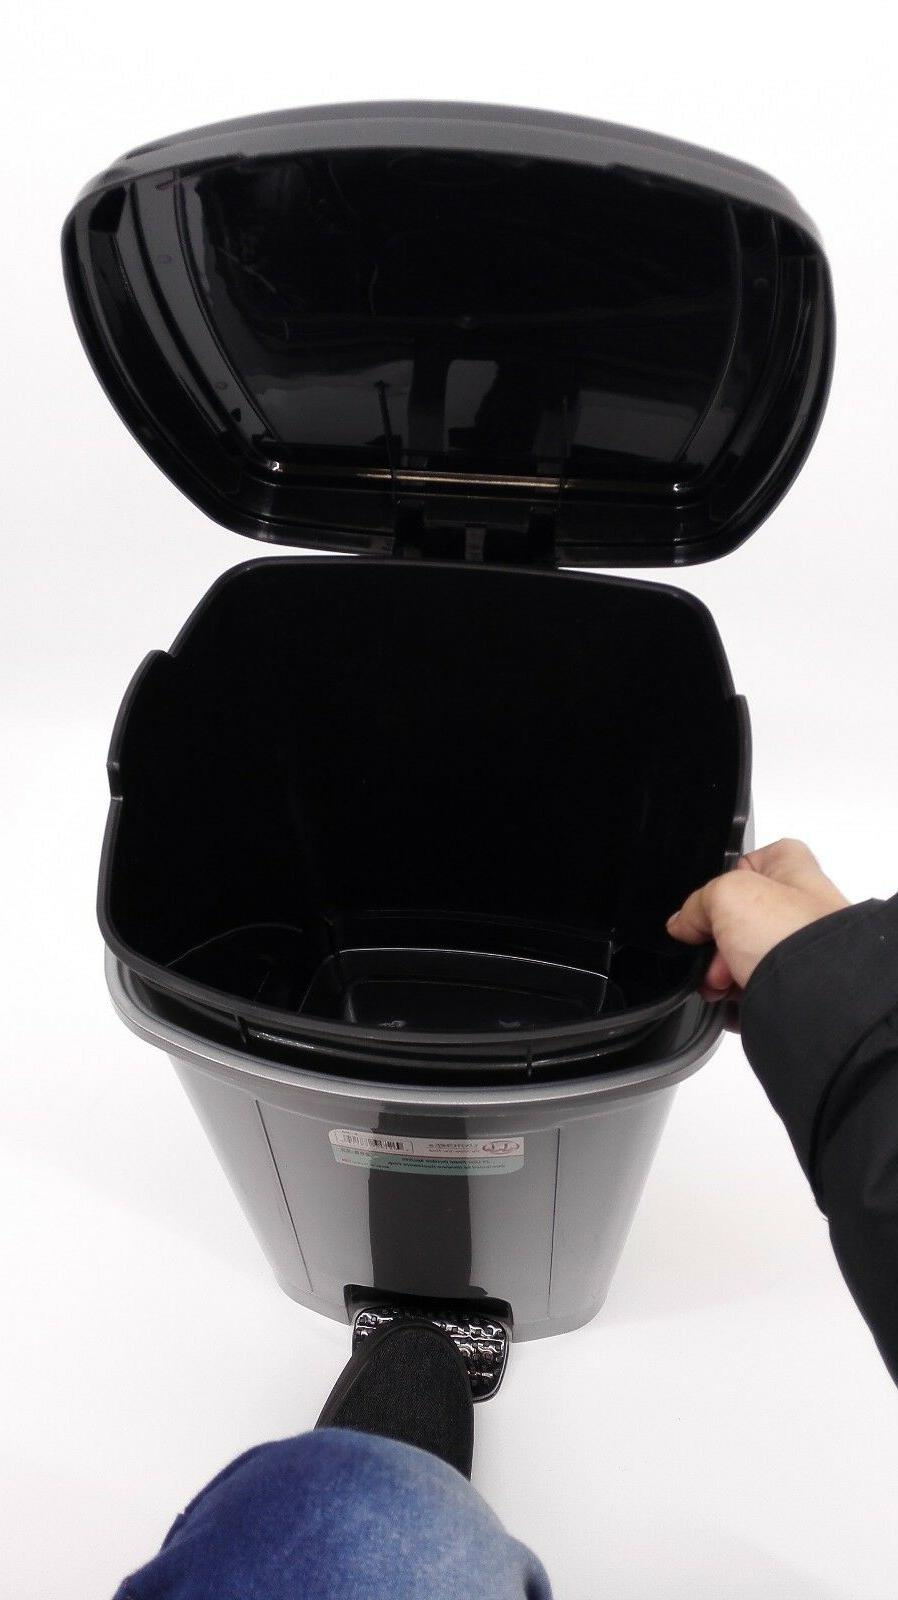 Pedal Dustbin Trash Can For Room,22/12/6